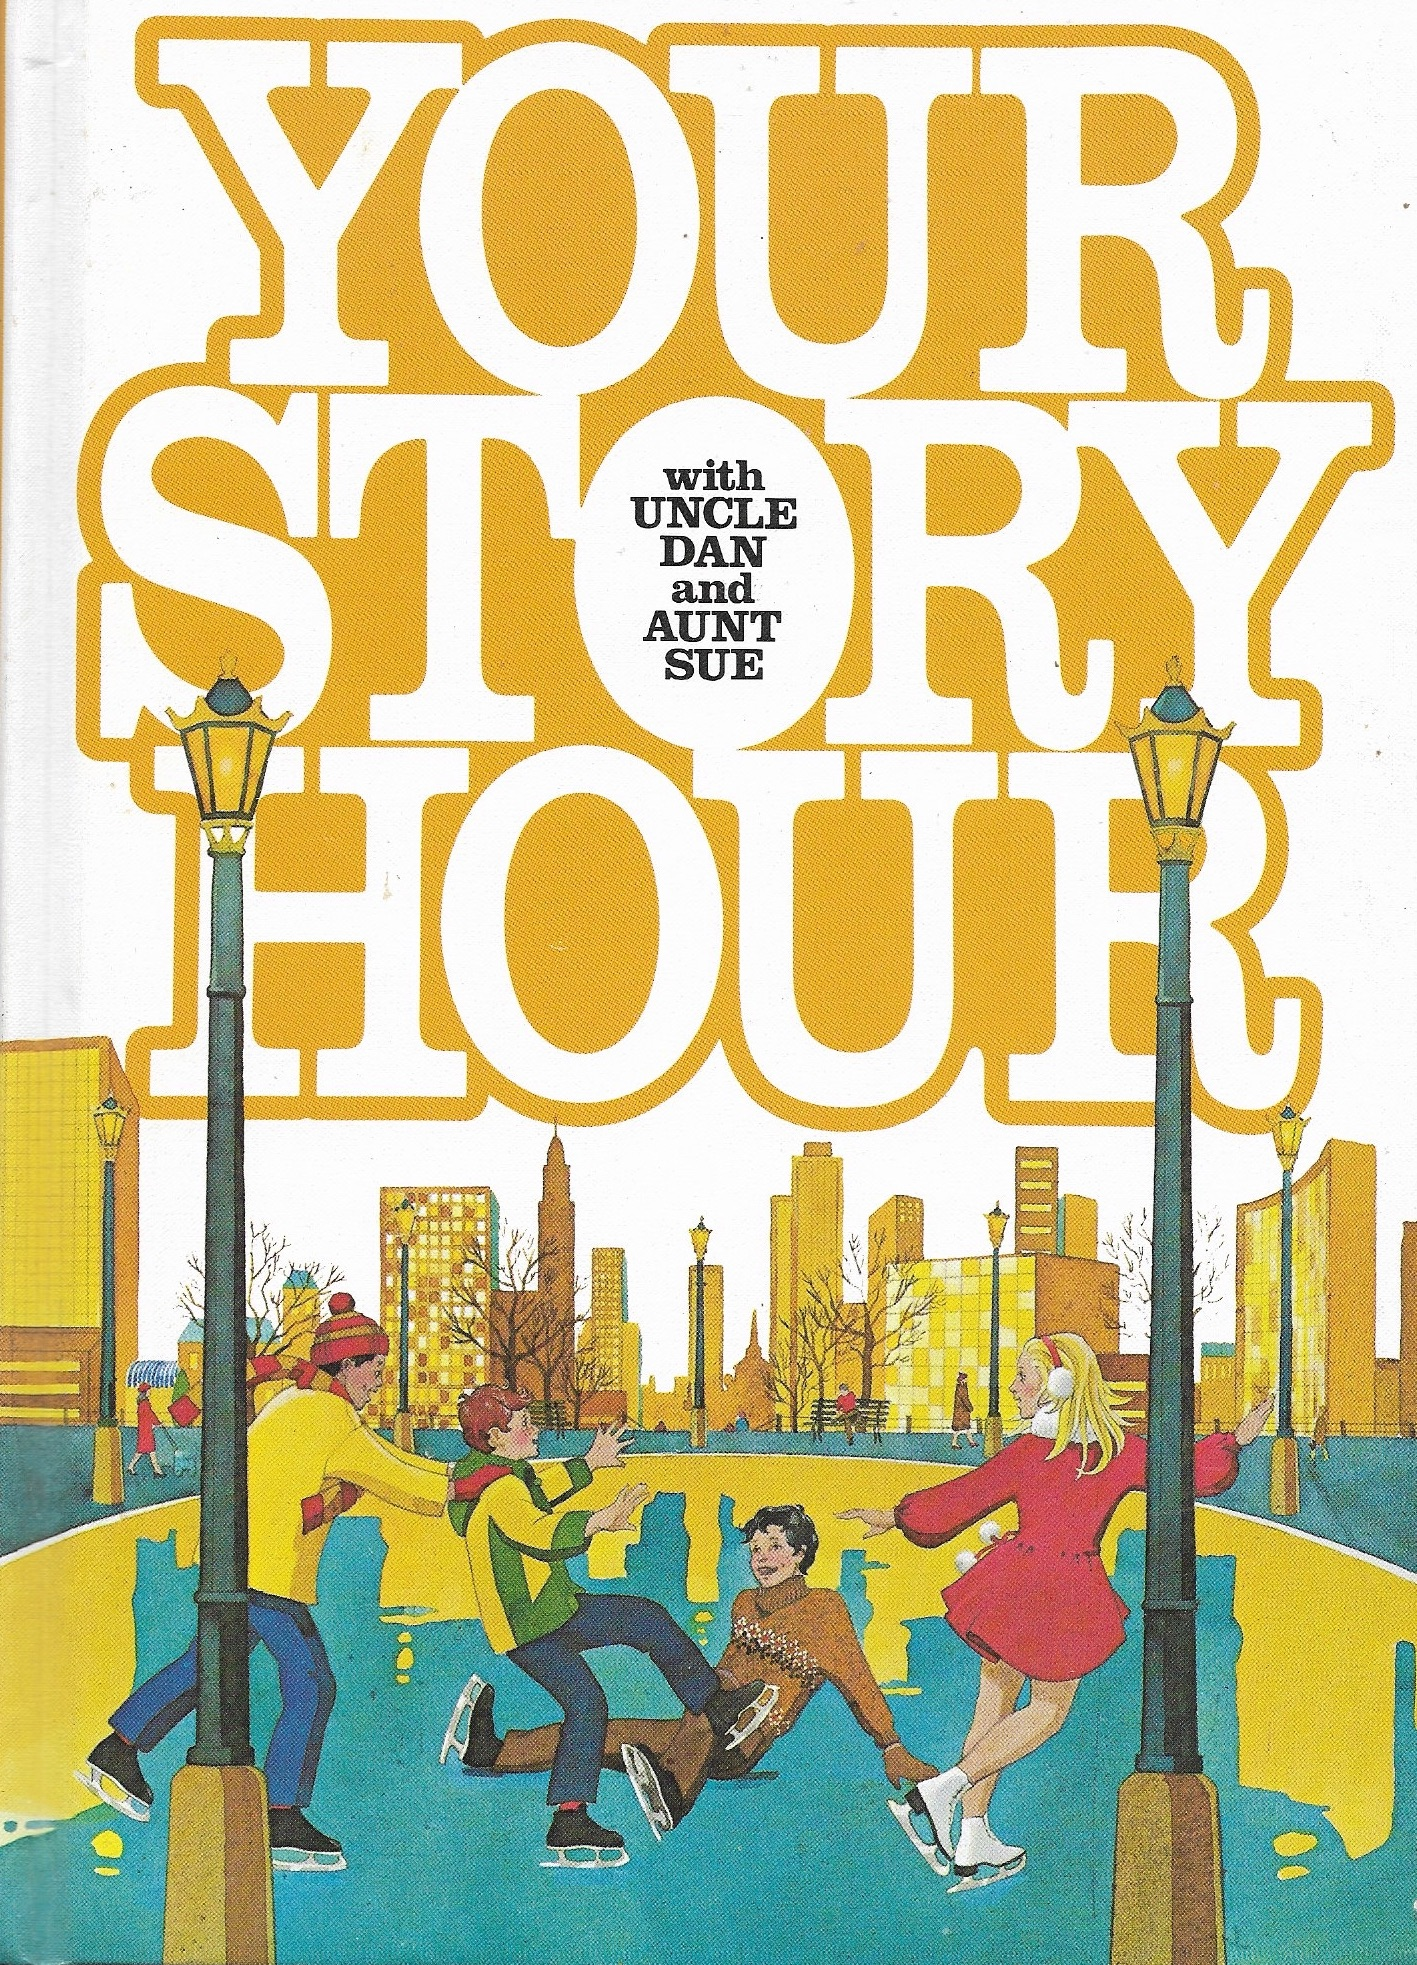 Your Story Hour with Uncle Dan and Aunt Sue Volume Two by Bobbie Jane Van  Dolson Elaine Meseraull on Bleak House Books